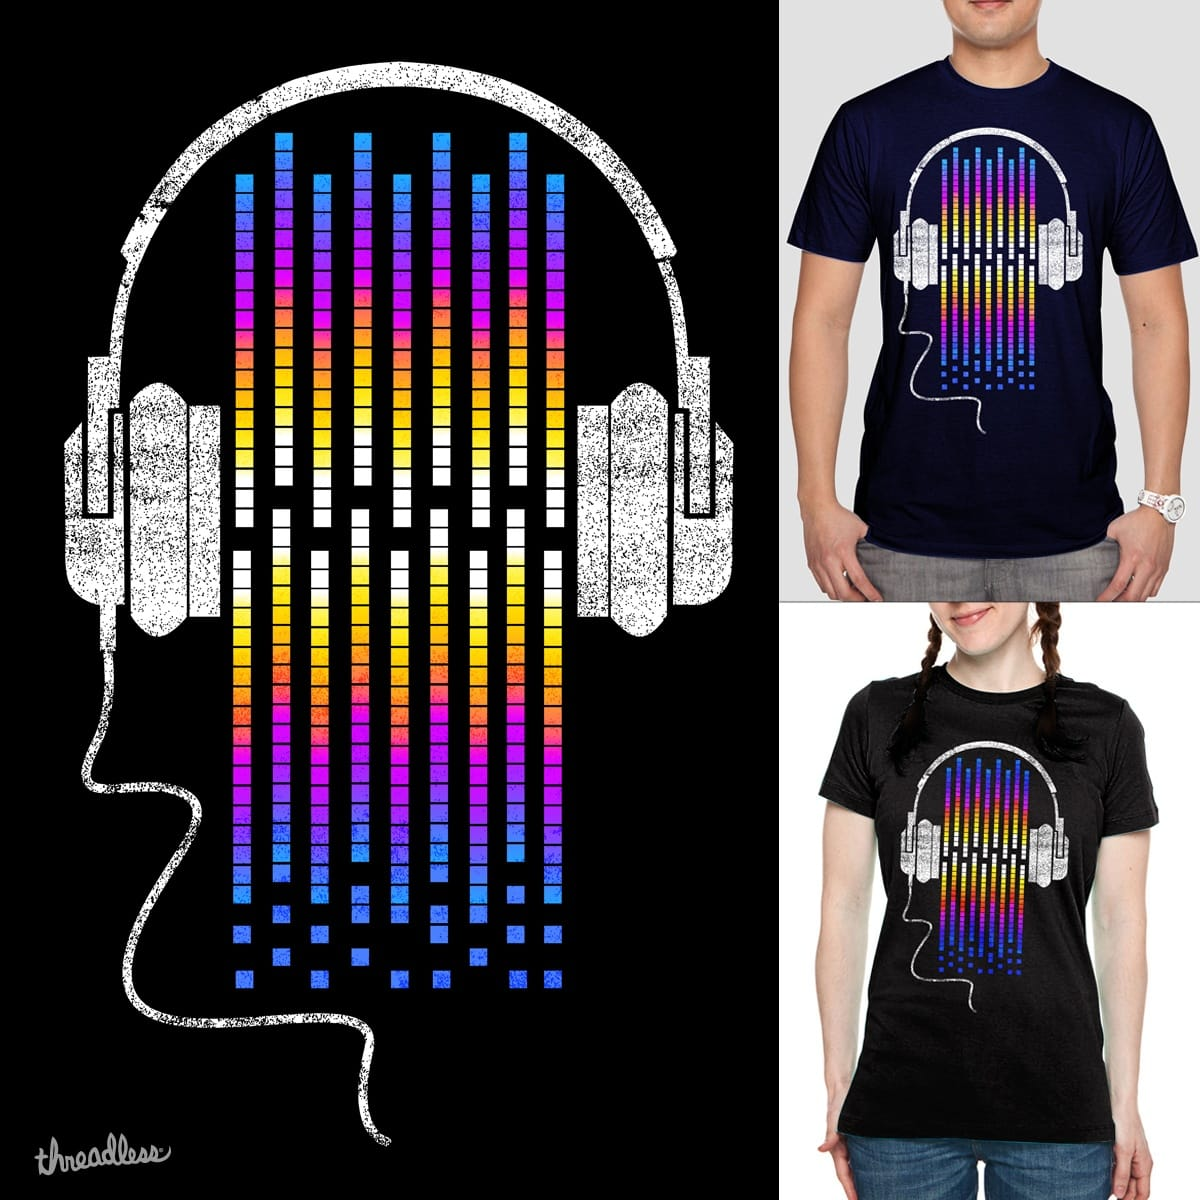 Enjoy The Sound by clingcling on Threadless